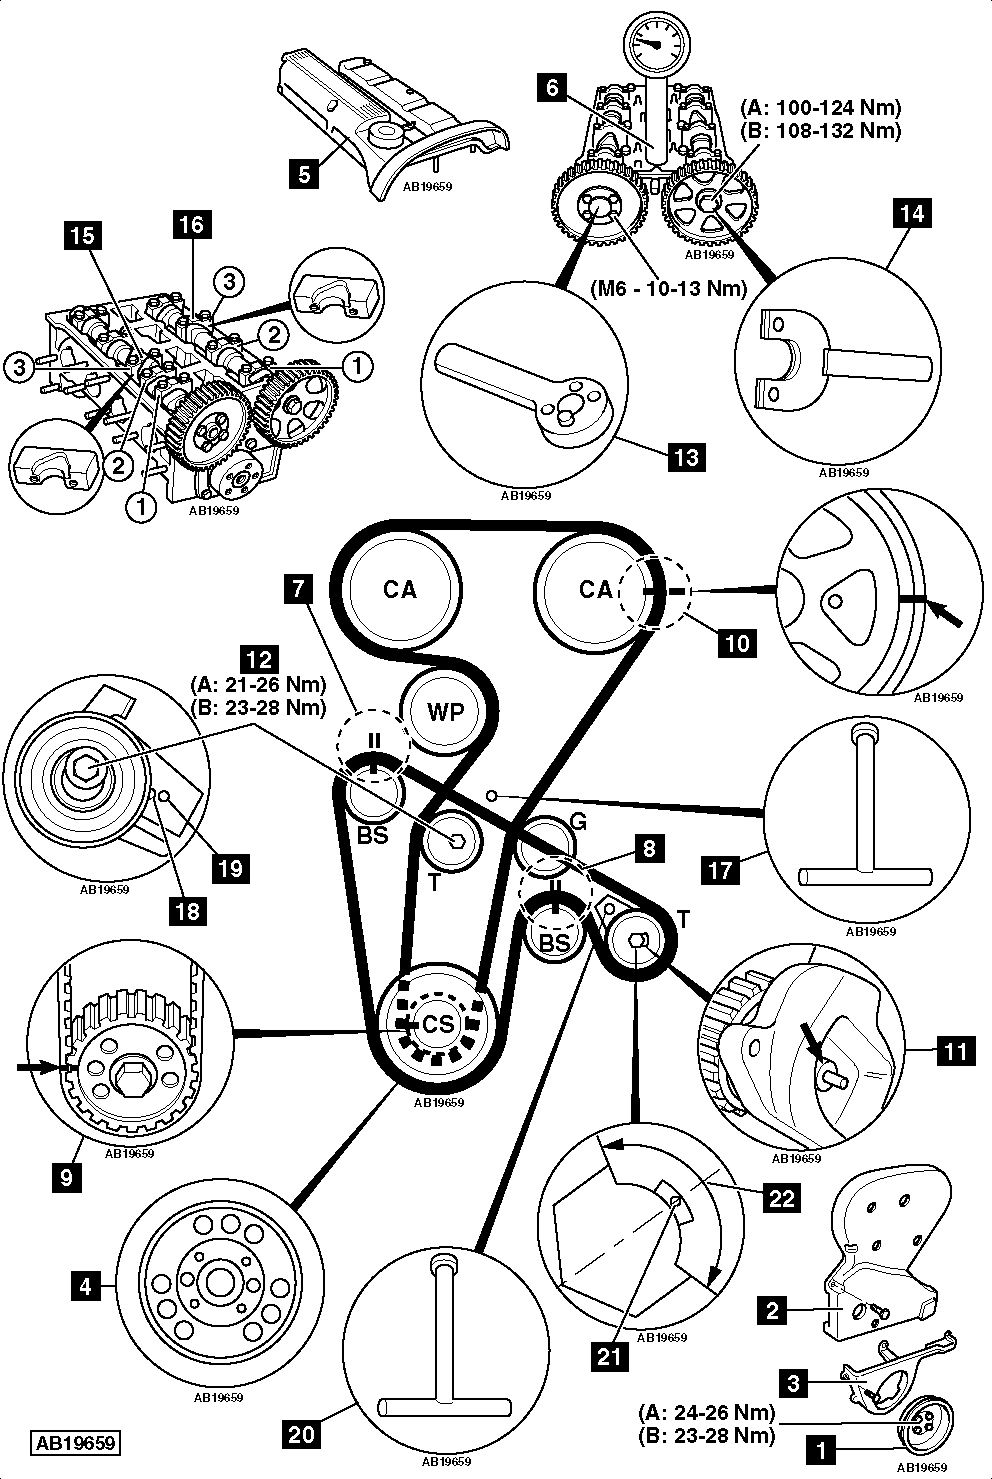 Wiring Diagrams 2006 Honda Odyssey in addition F150 Radiator Diagram also 8x9dg F150 Need Cylinder Head Torque Specs Timing Chain in addition 128158 Wiring Diagram For 1985 Ford F150 in addition 5 Cylinder Engine Diagram. on 2007 ford f 150 5 4 engine diagram